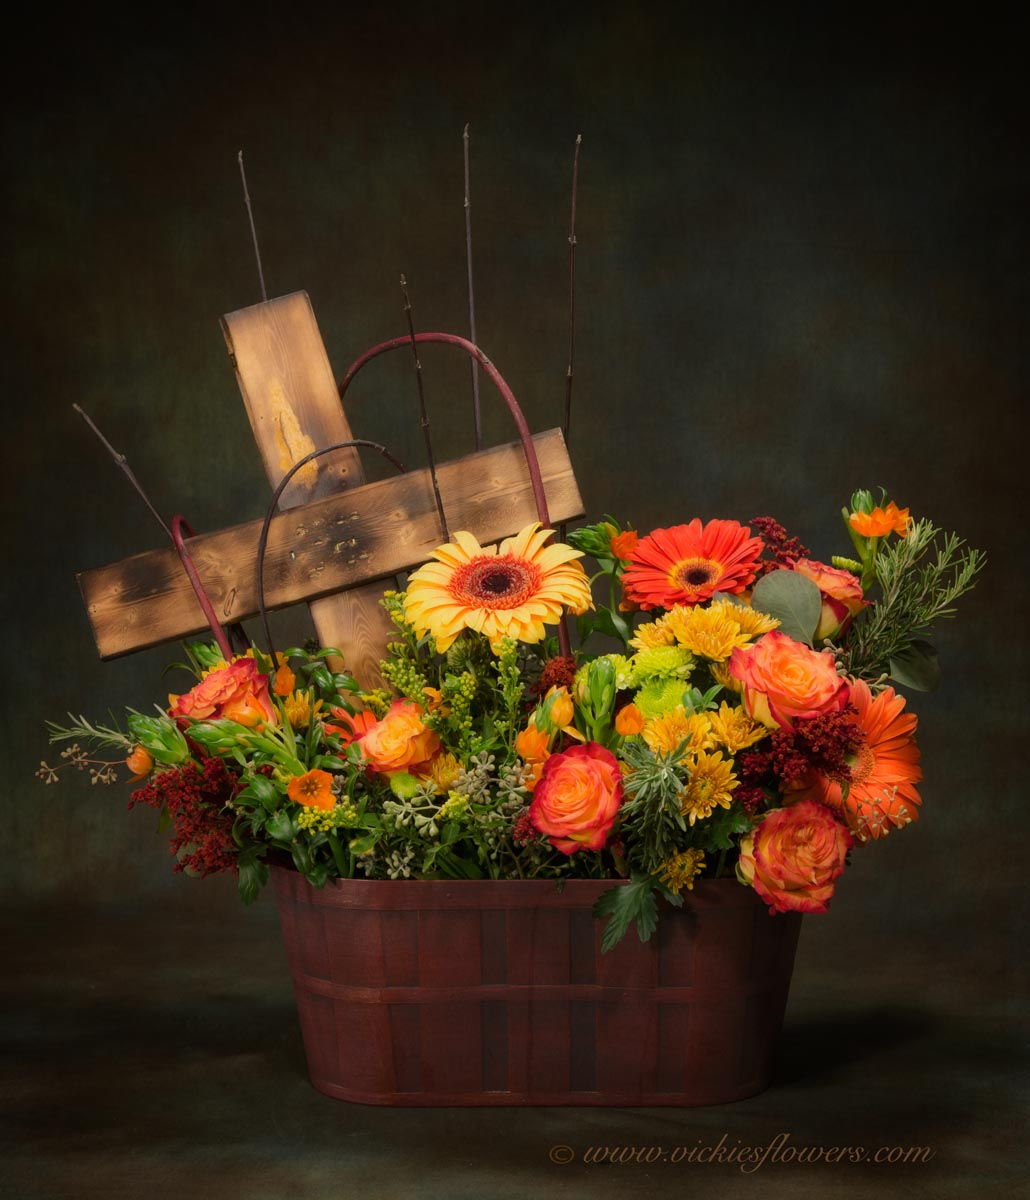 Photograph of funeral sympathy flowers Unique memorial basket of flowers with wooden keep sake cross. Flowers include yellow Gerber Daisies, orange Circus Roses, orange Gerber Daisies, yellow Mums, Protea, Pussy Willow, and mixed greens.